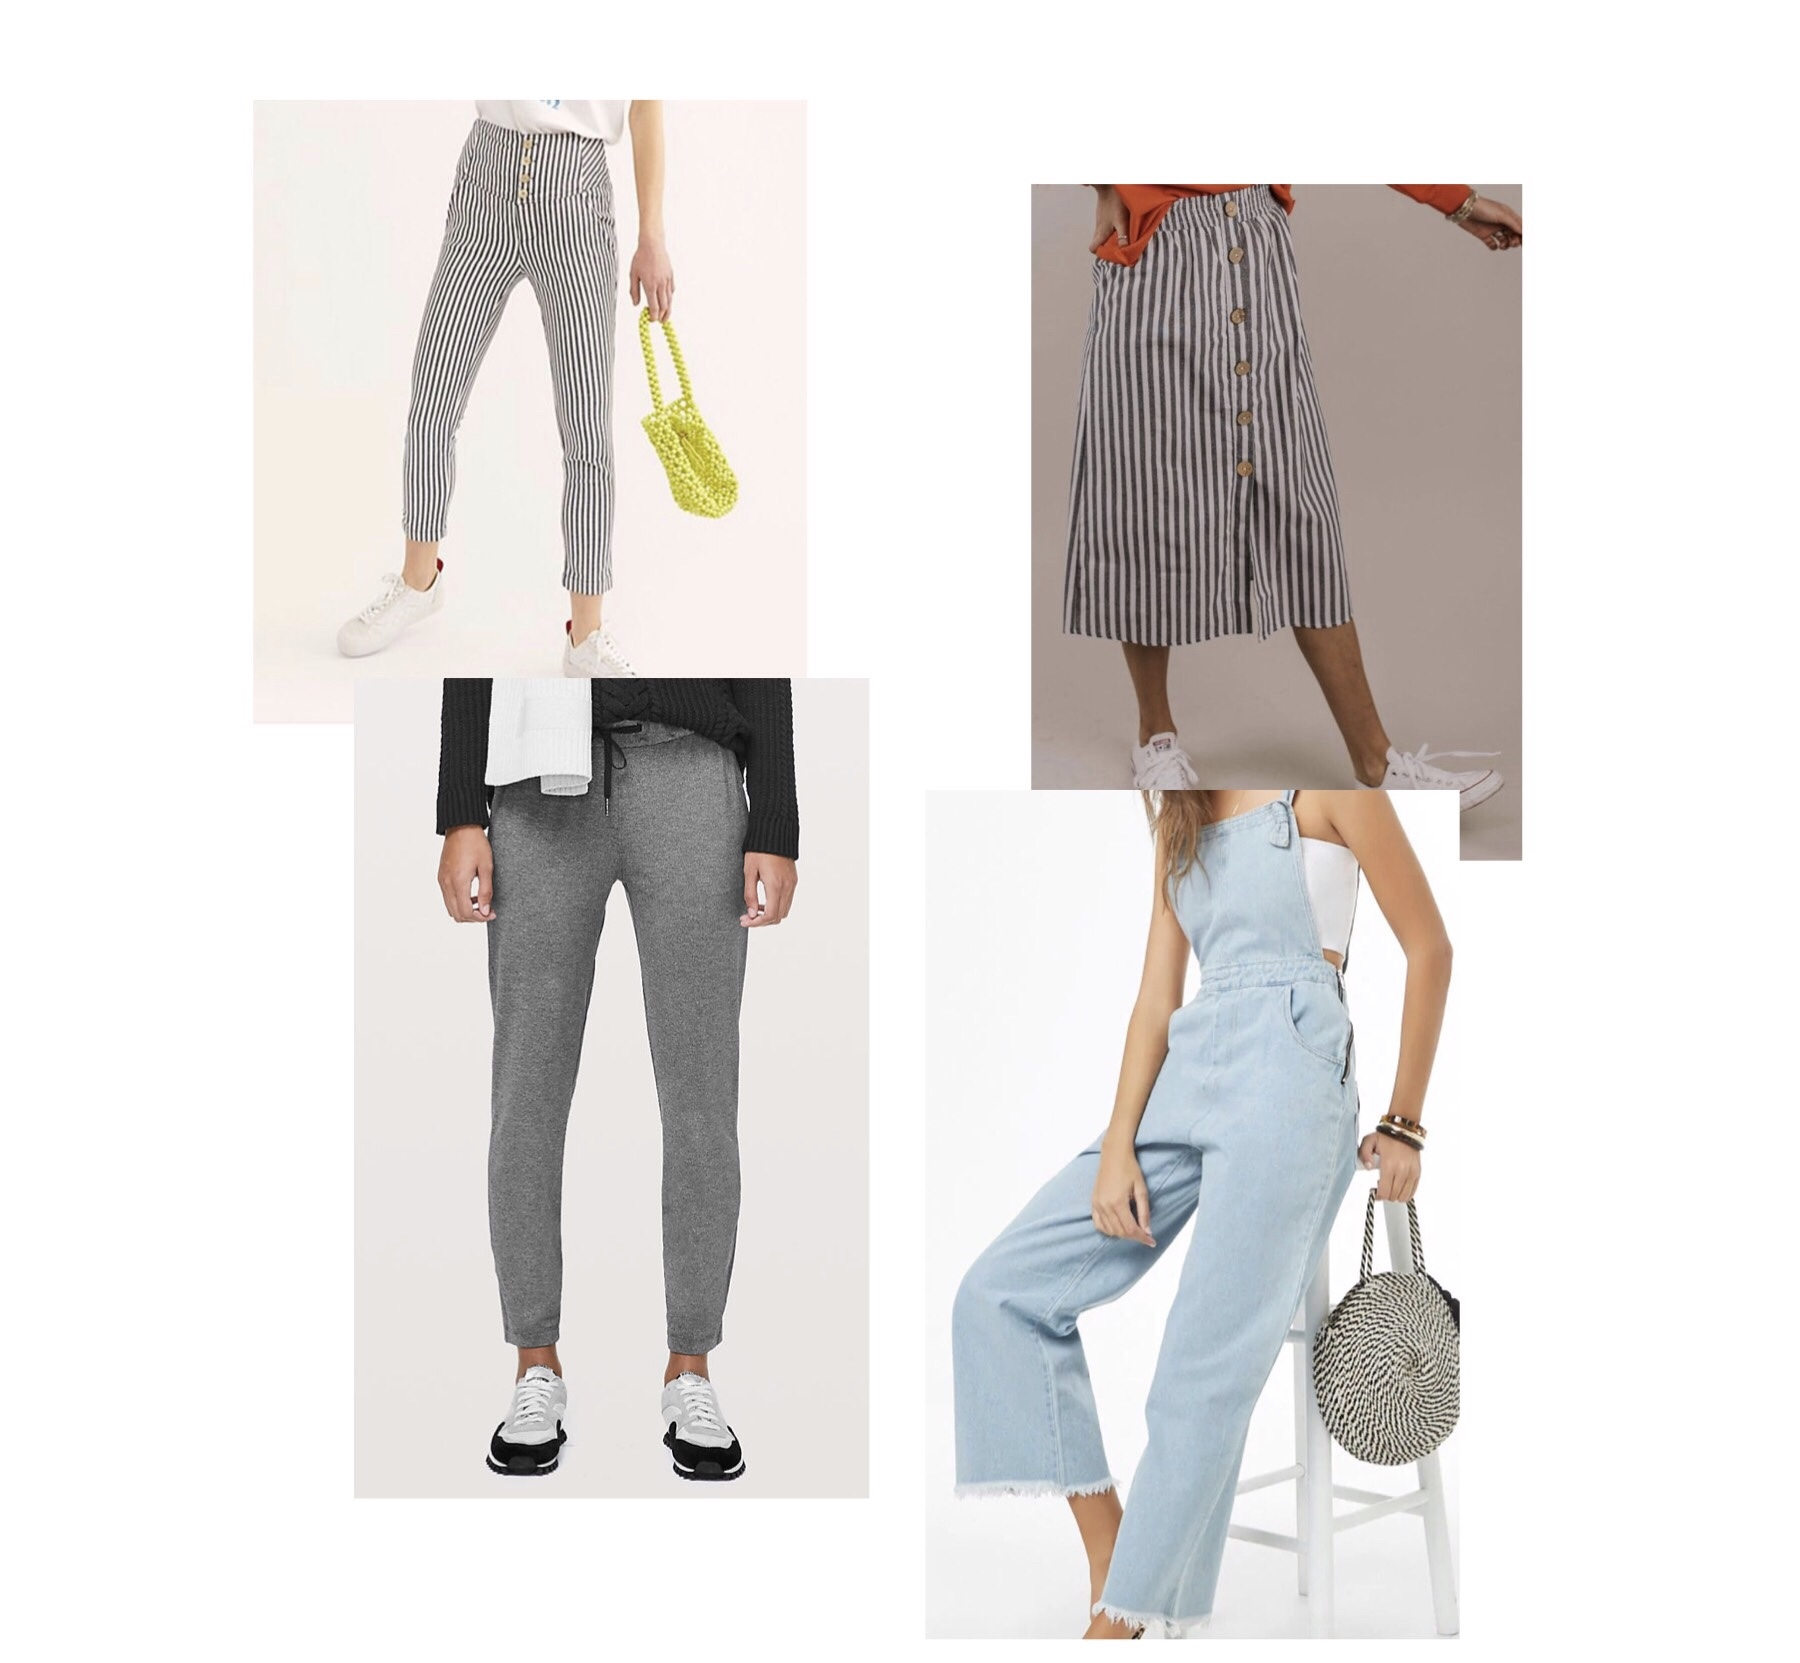 (clockwise)  1.  Free people high waist skinny pants  - $78  2.  roole dexter button skirt  - $35  3.  forver 21 frayed-hem denim overalls  - $34  4.  Lululemon on the fly pant  - $98